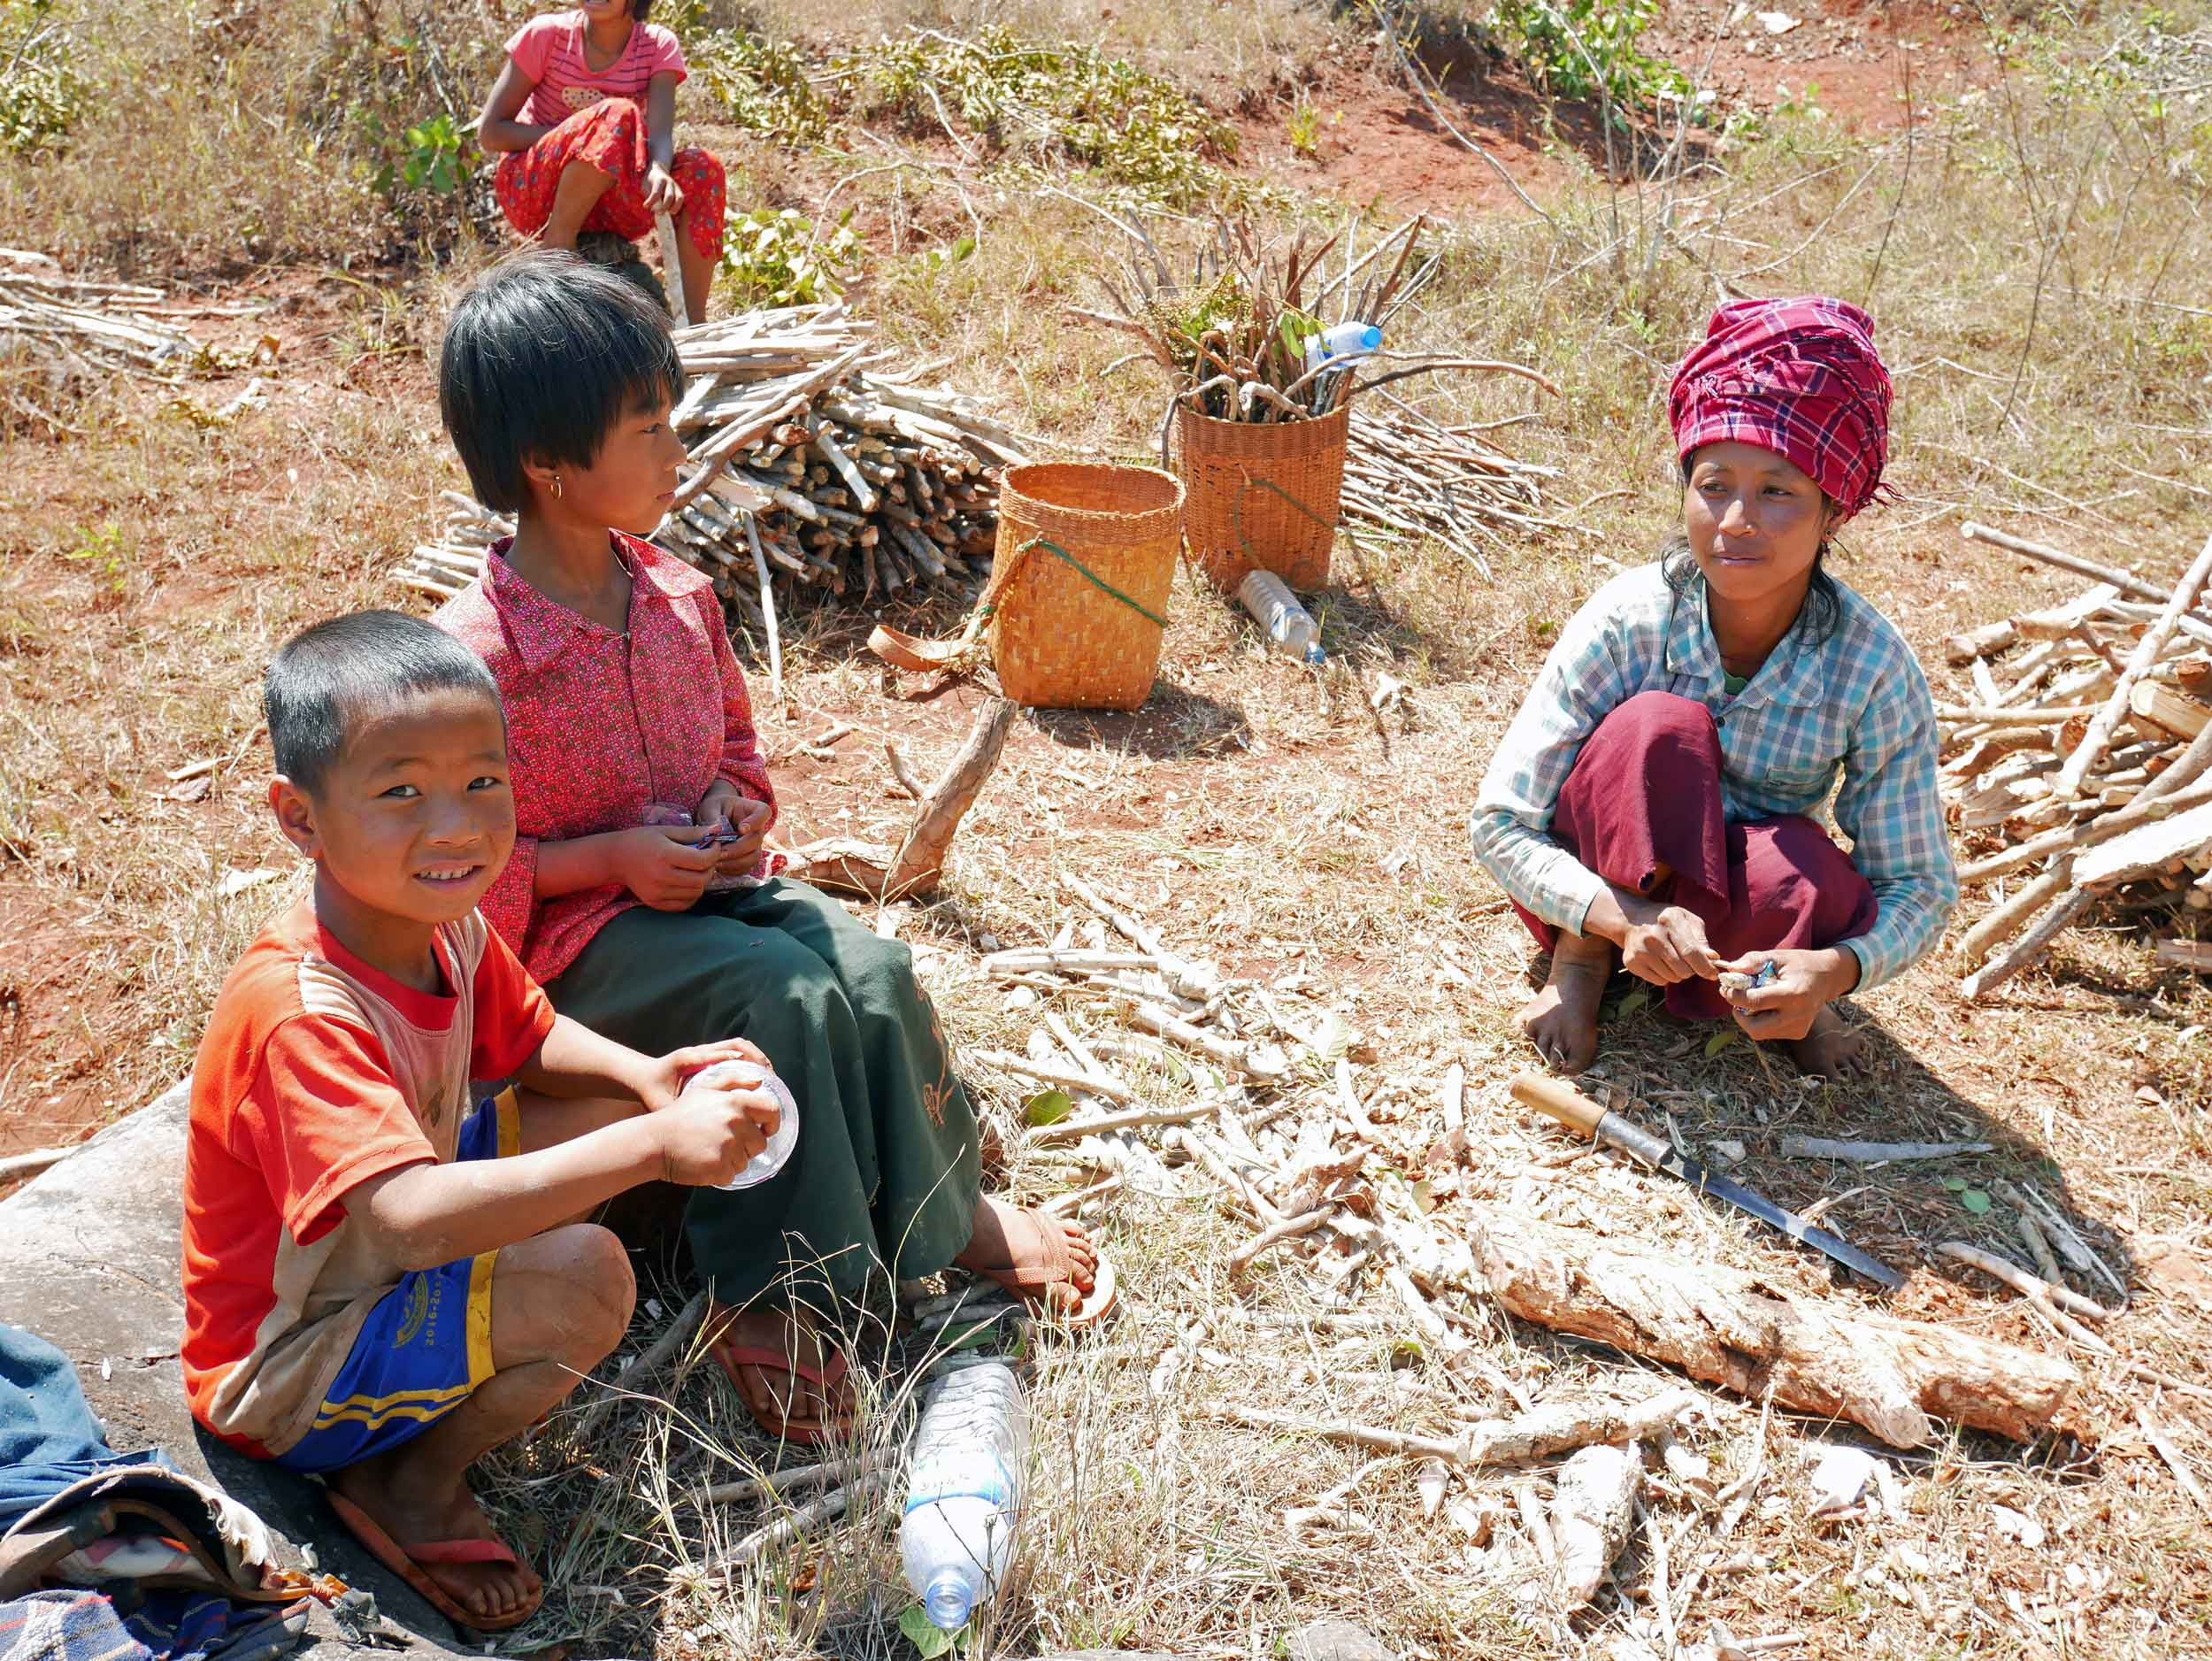 Near the end of our walk, we spotted this family working together to collect and chop firewood (Feb 21).